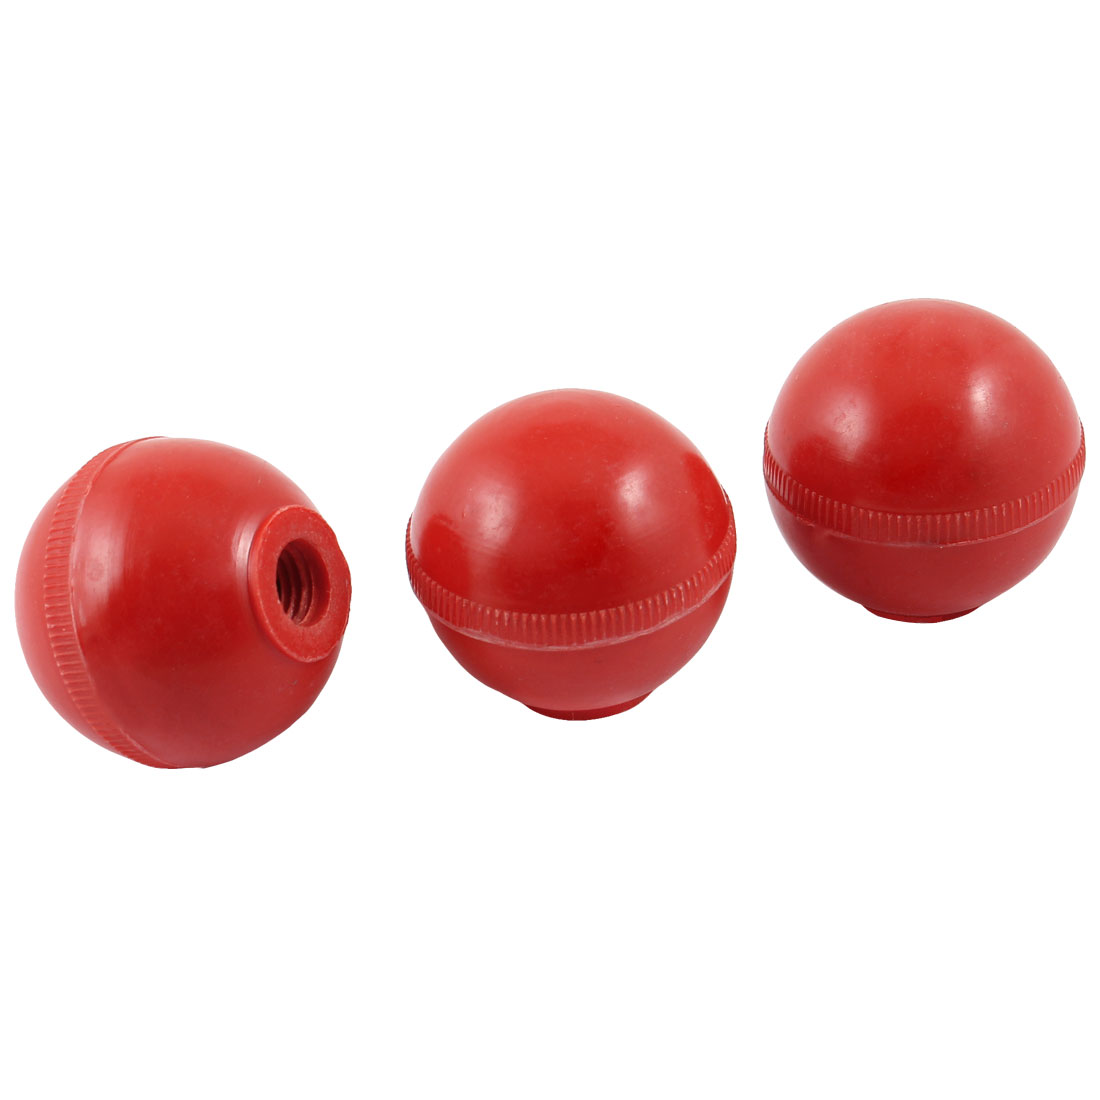 "3 Pcs 1.75"" Dia Red Plastic Balls Machine Handle Round Knobs Grip"